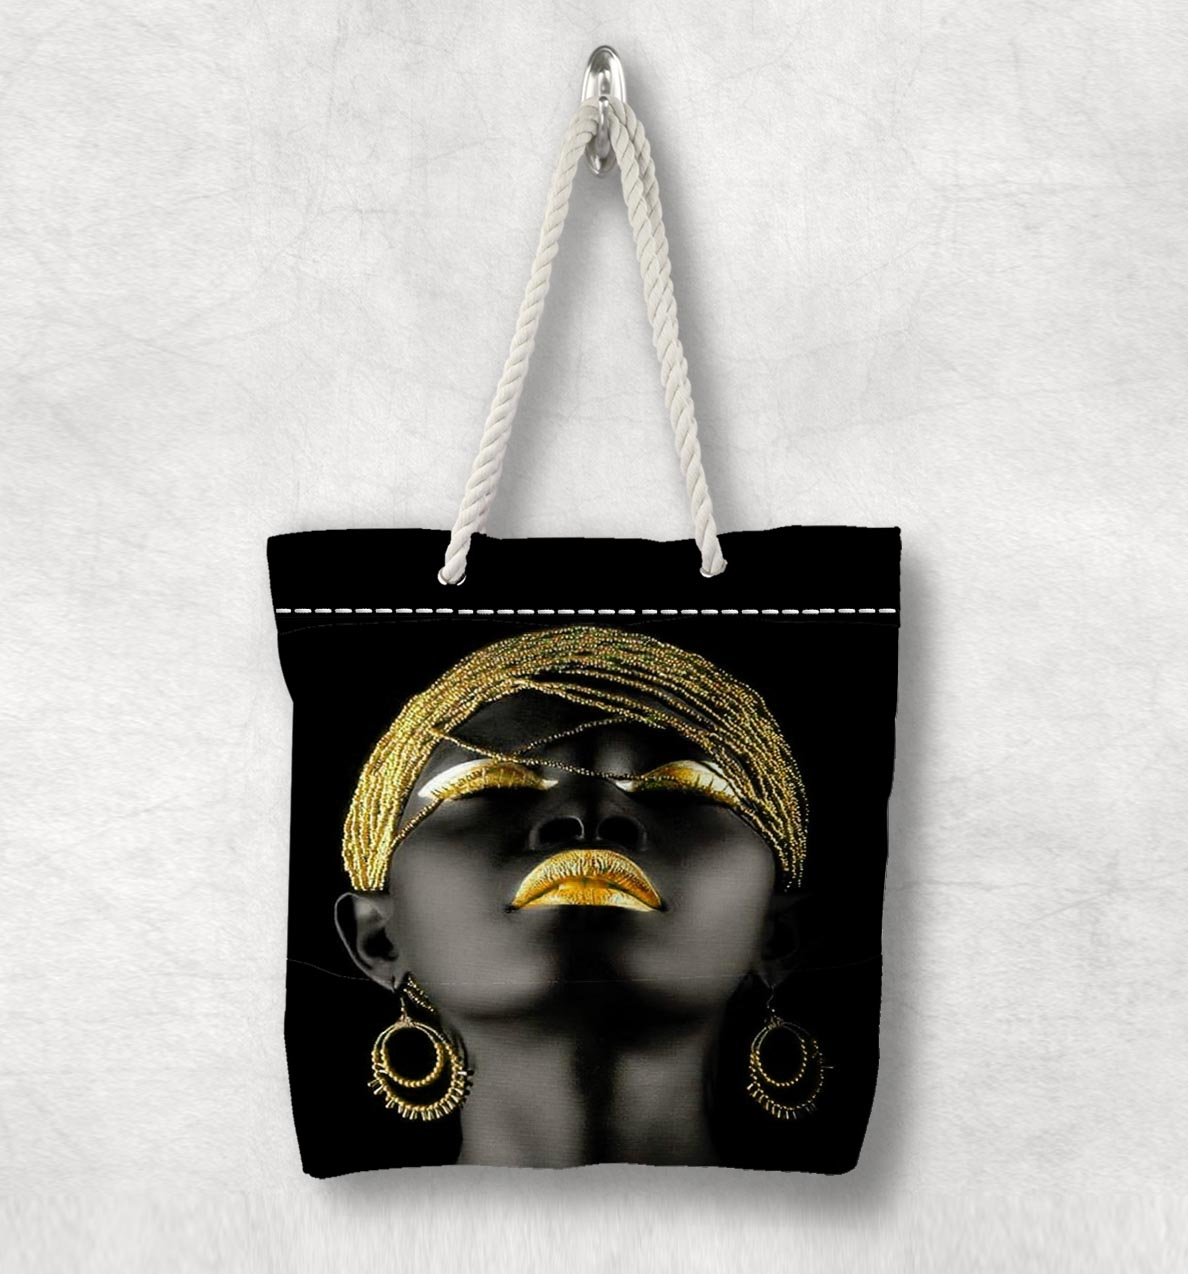 Else Black Girl Yellow Hair Lips New Fashion White Rope Handle Canvas Bag Cotton Canvas Zippered Tote Bag Shoulder Bag